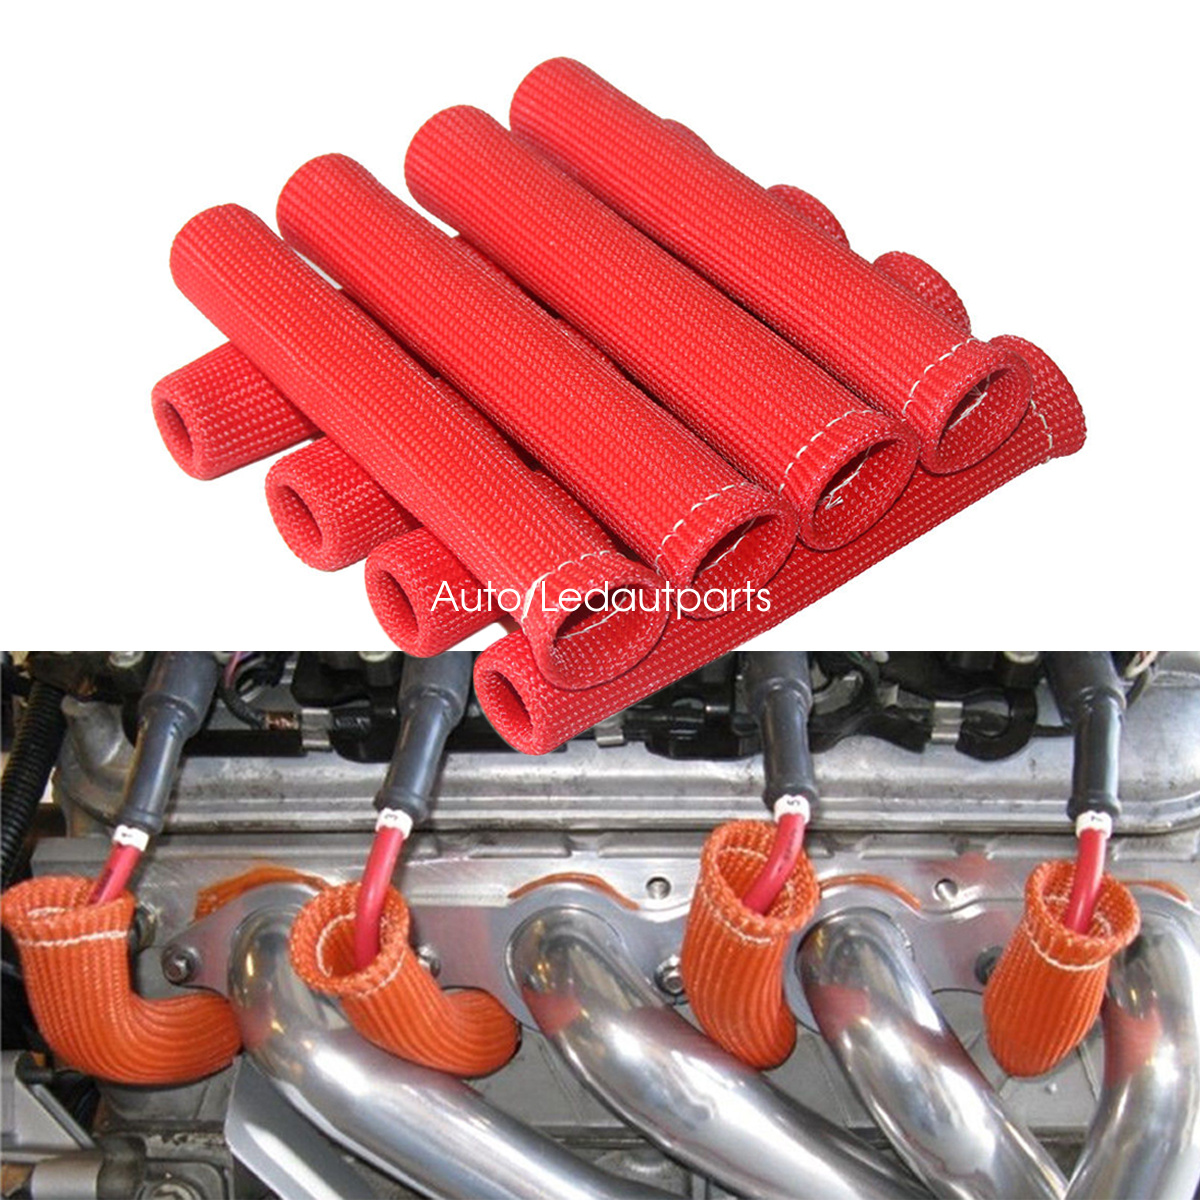 8pcs Red 1200° Ignition Wires Spark Plug Wire Boots Heat Sleeve Shield Protector